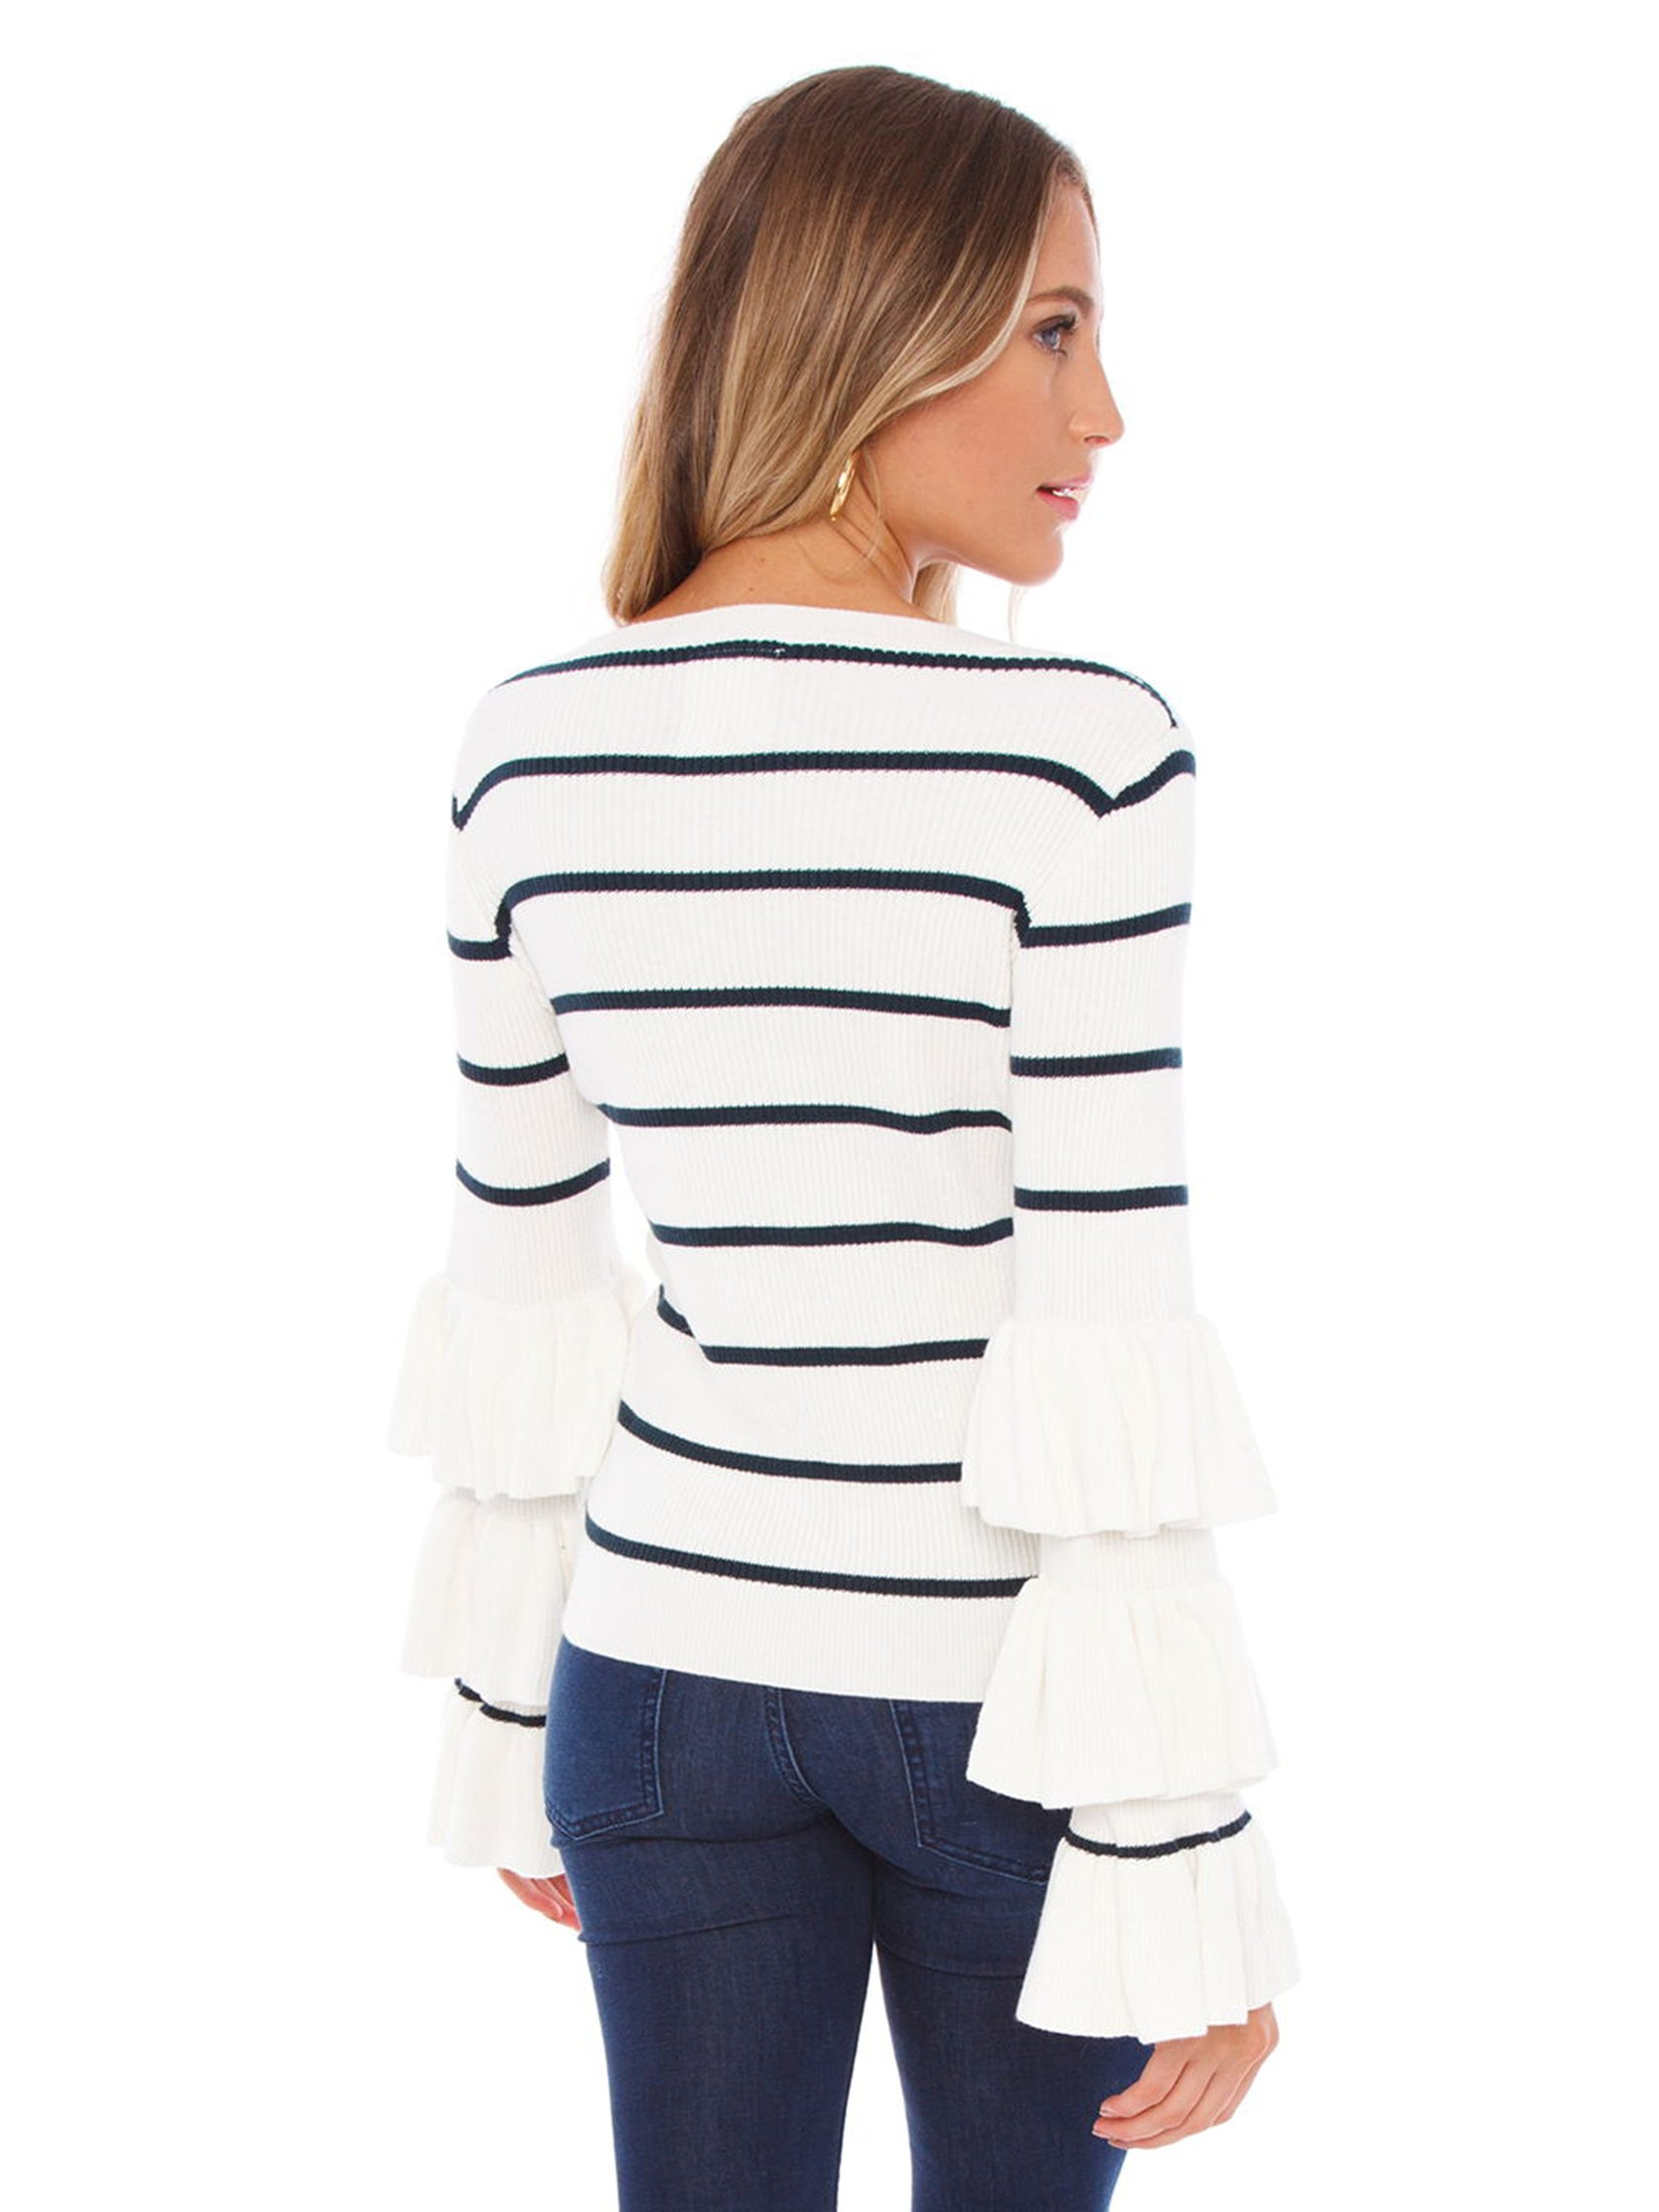 Women outfit in a sweater rental from Chaser called Ruffle Sleeve Striped Sweater